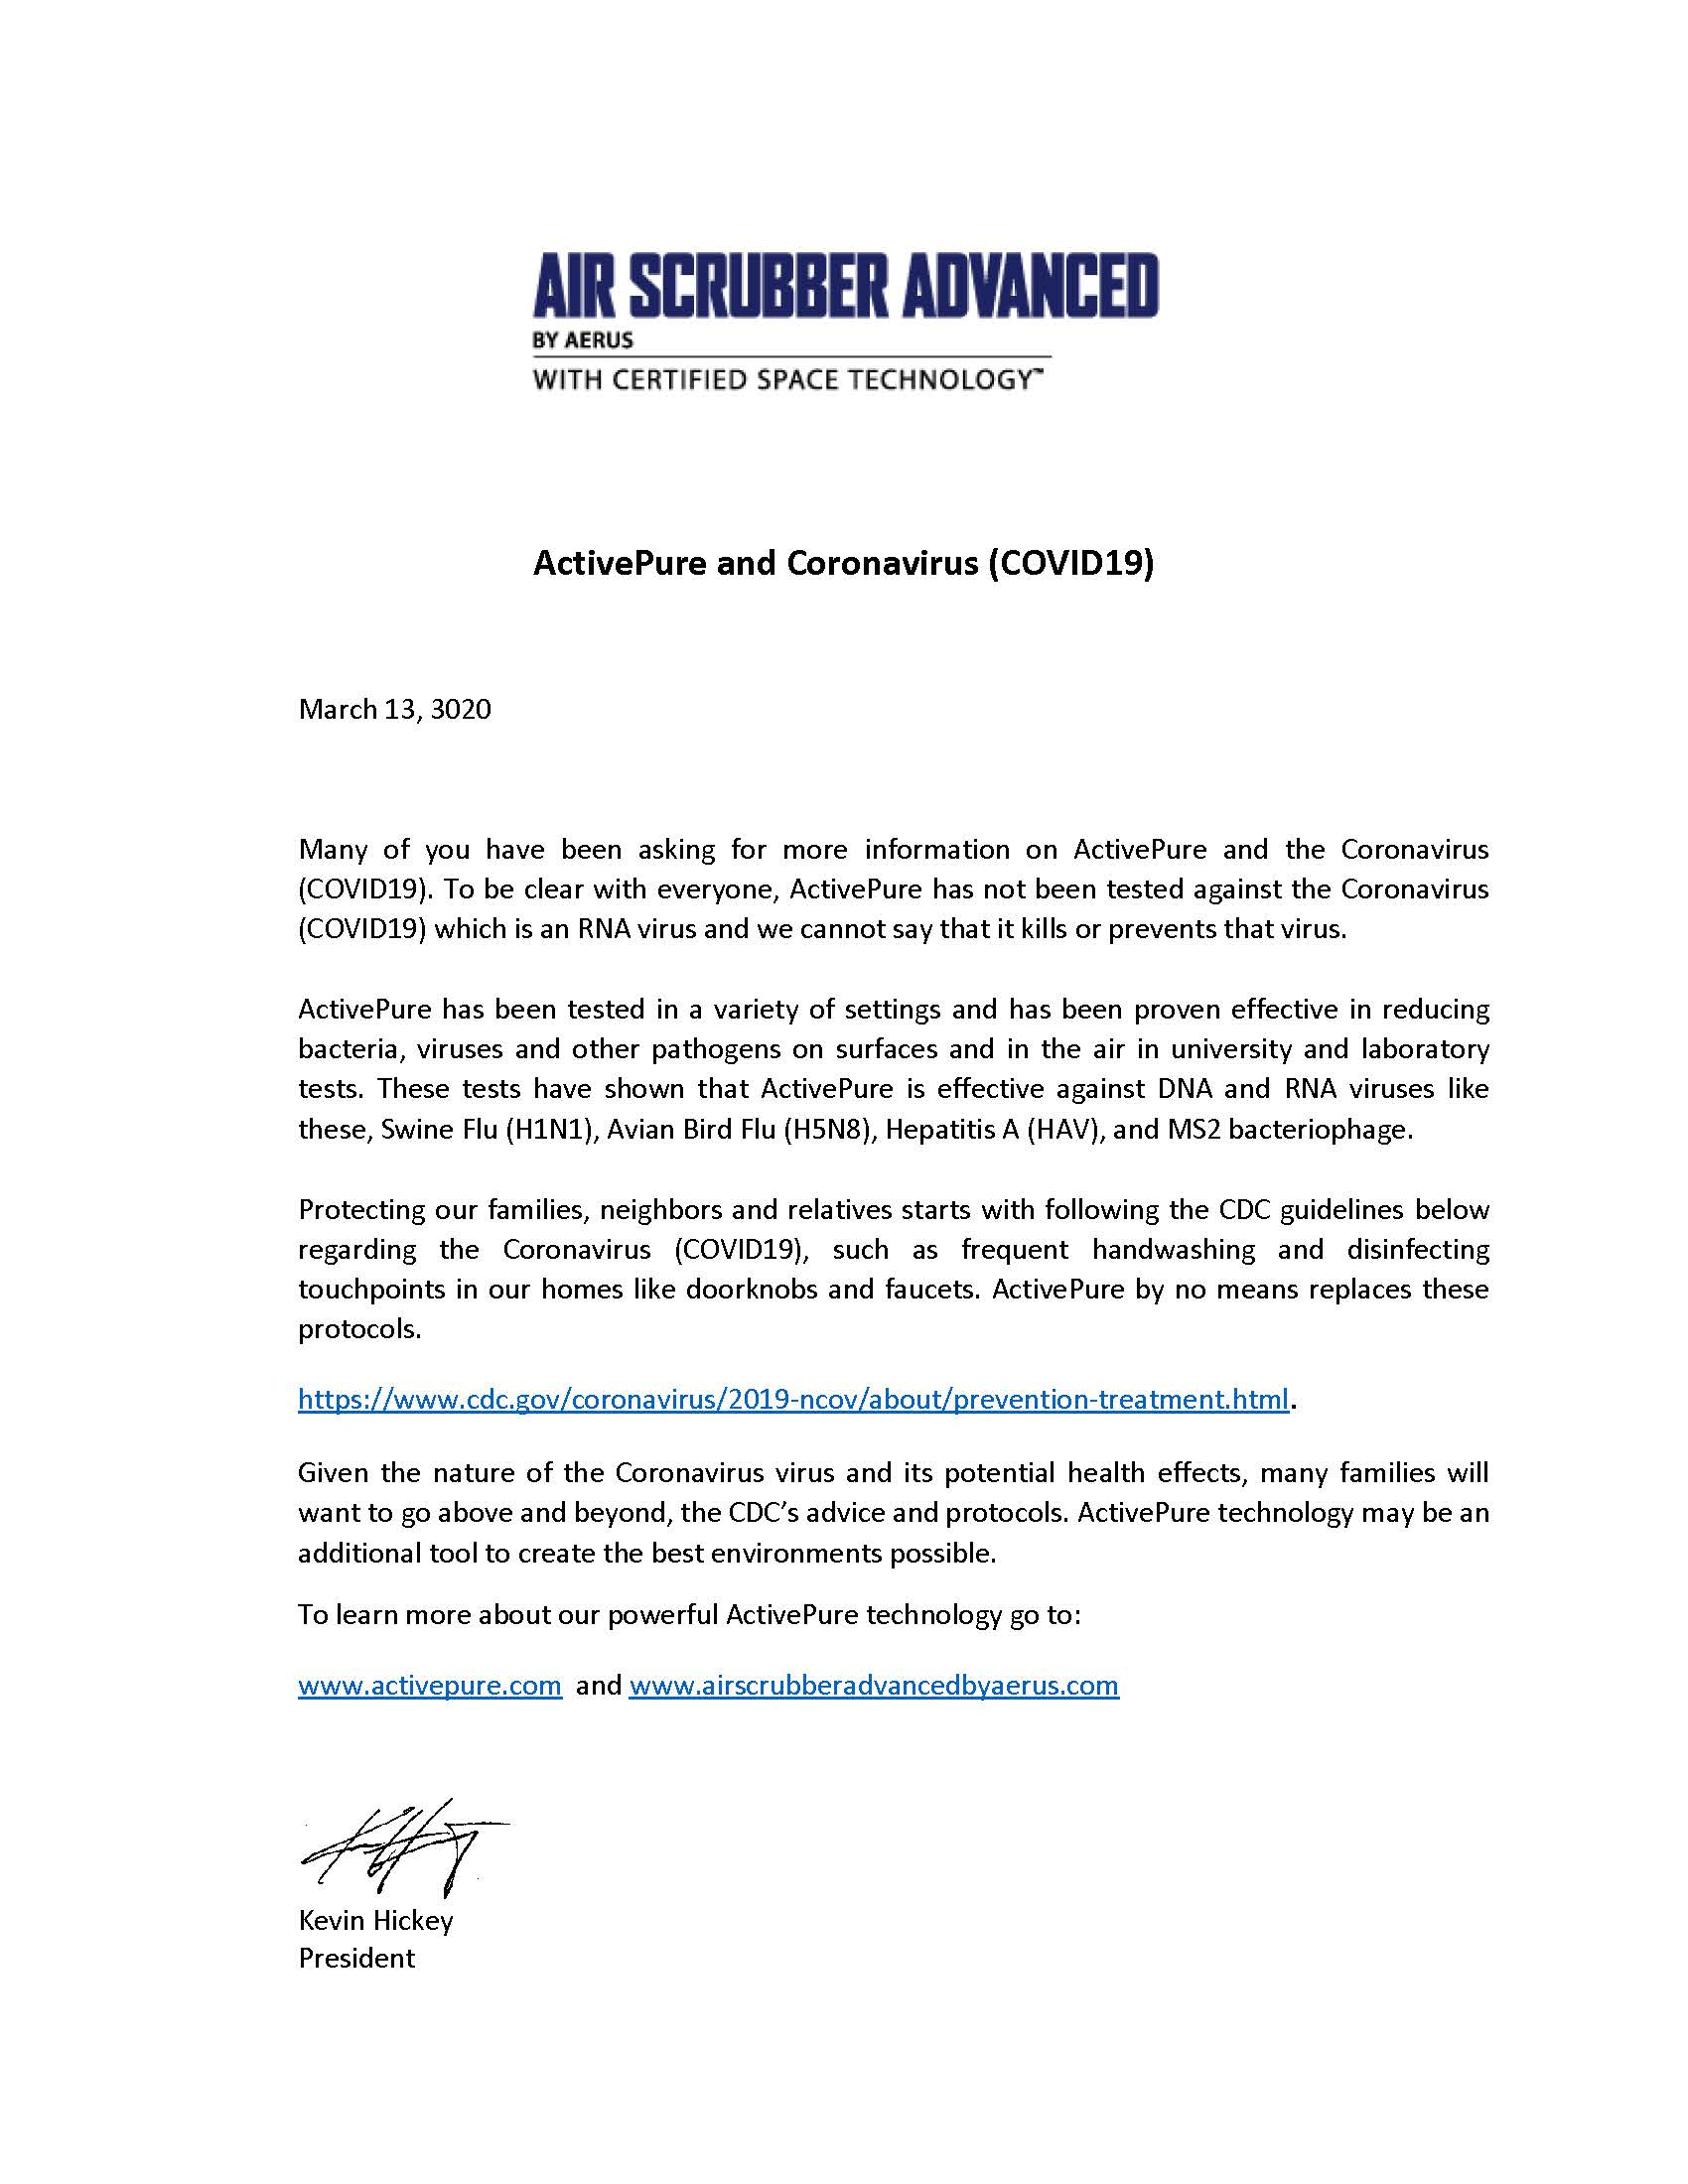 air scrubber letter.